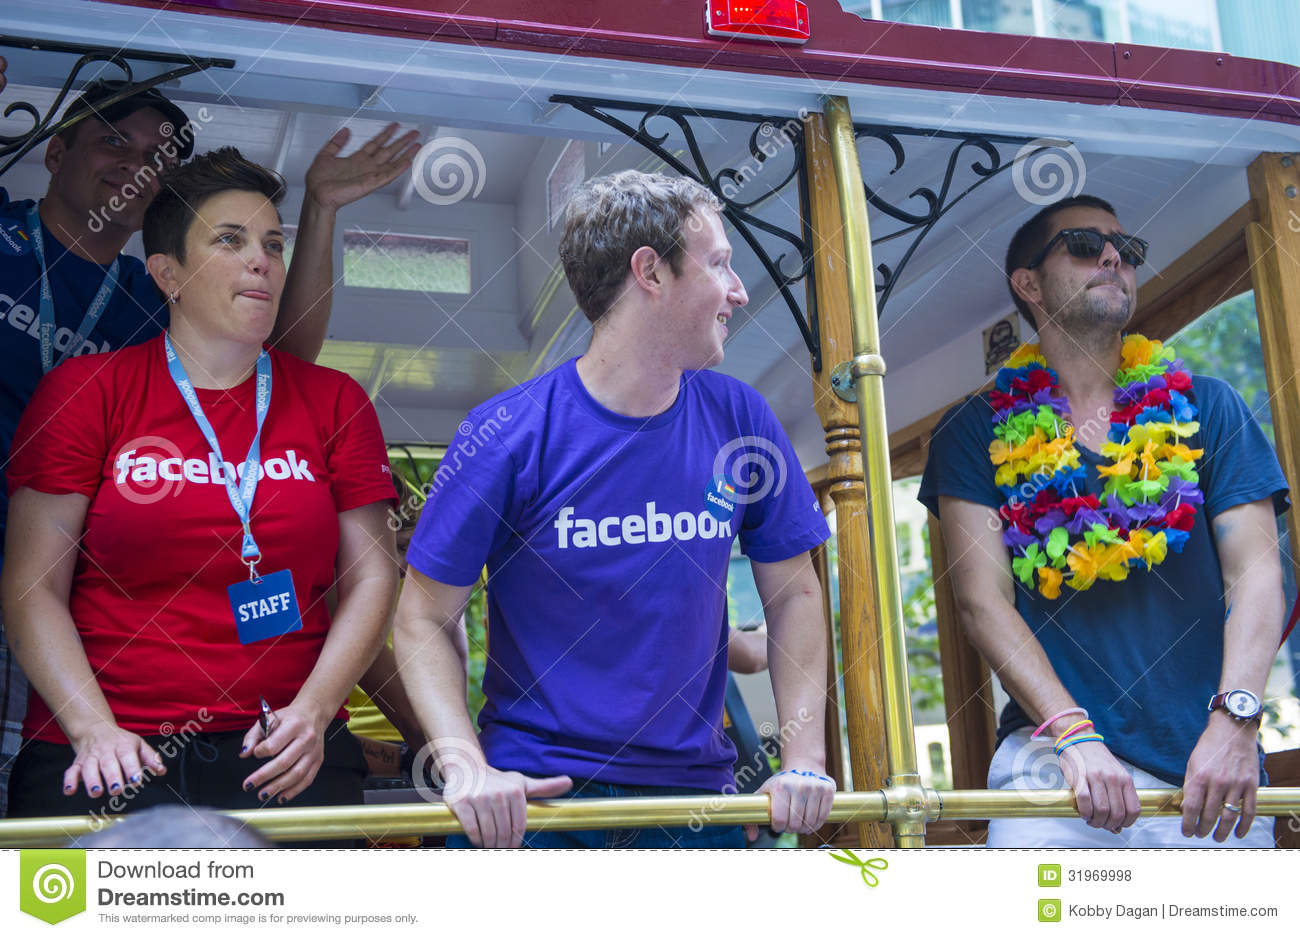 Facebook in San Francisco gay pride